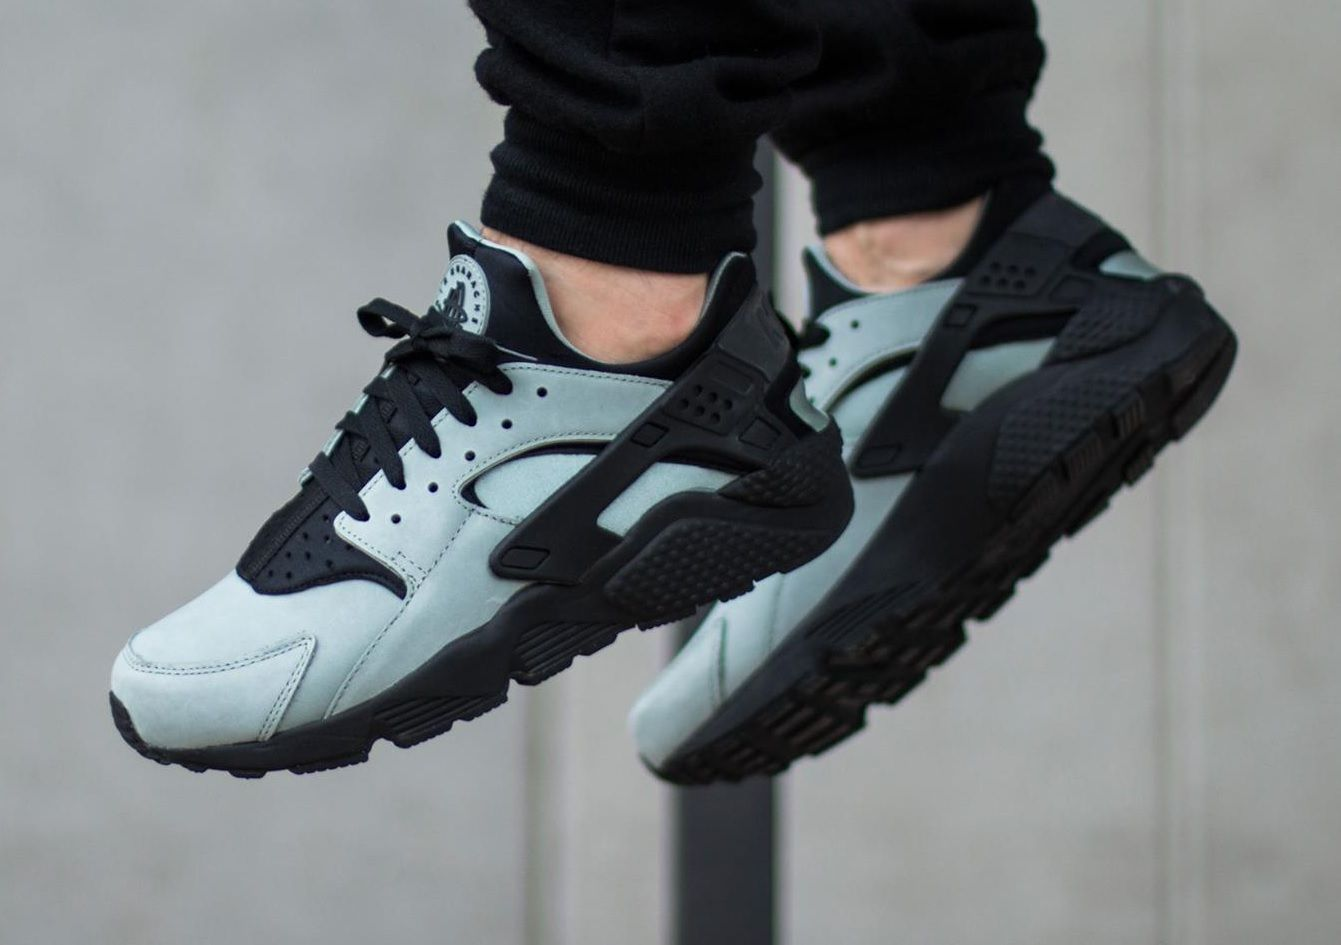 Discount Nike Air Huarache Run Ultra Trainers Dark Loden